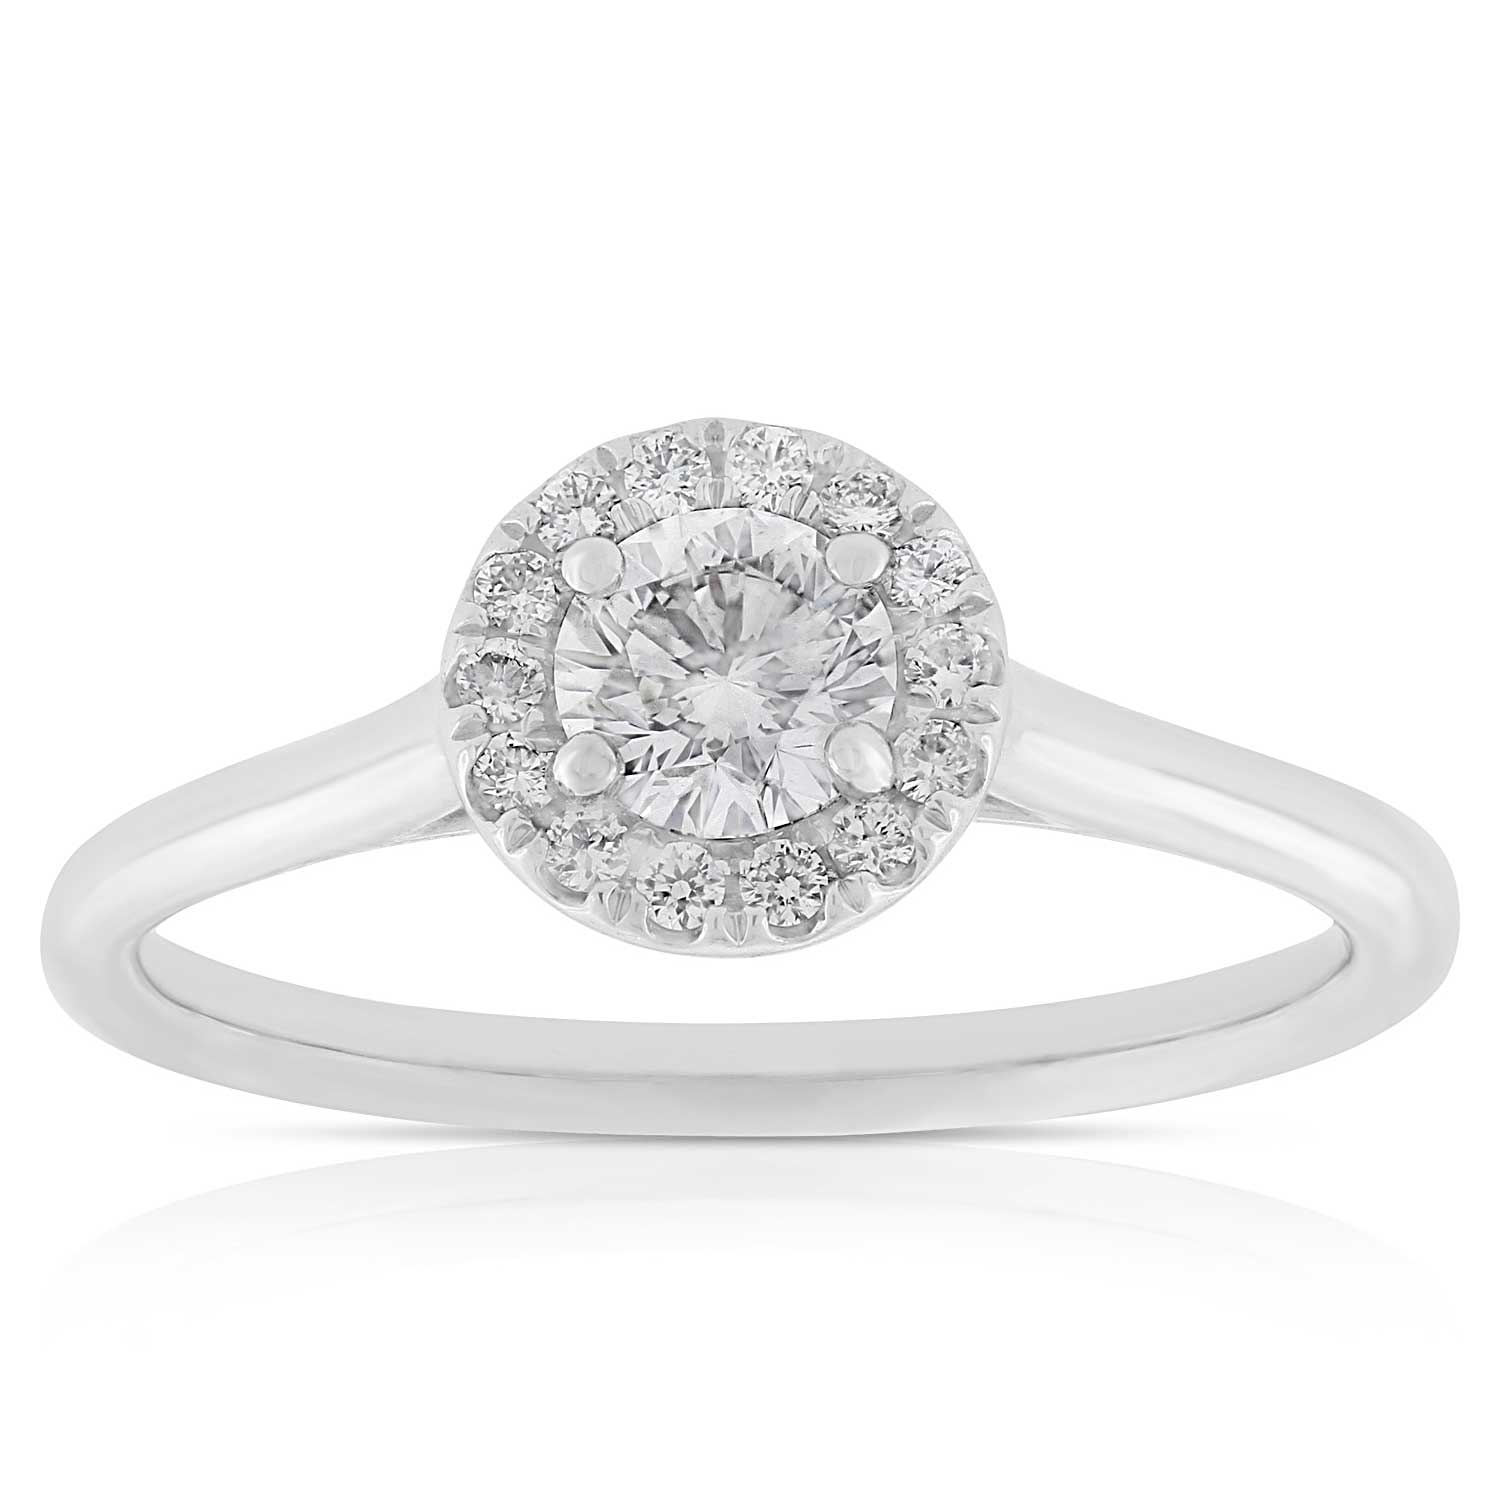 513cca3b7e47e Signature Forevermark Diamond Ring 18K